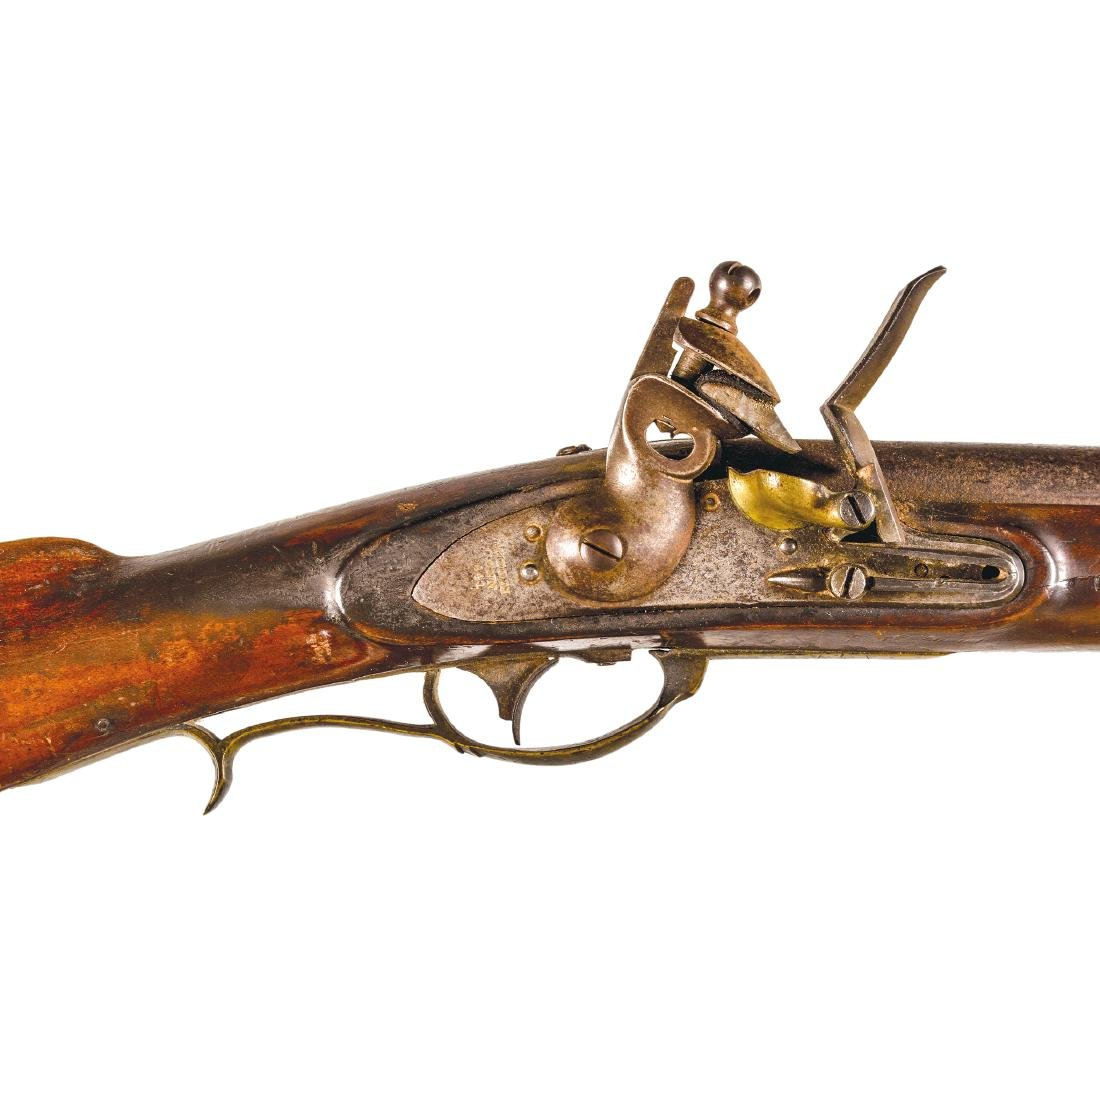 US Model 1817 Flintlock Rifle, Nathan Starr + Son - 3